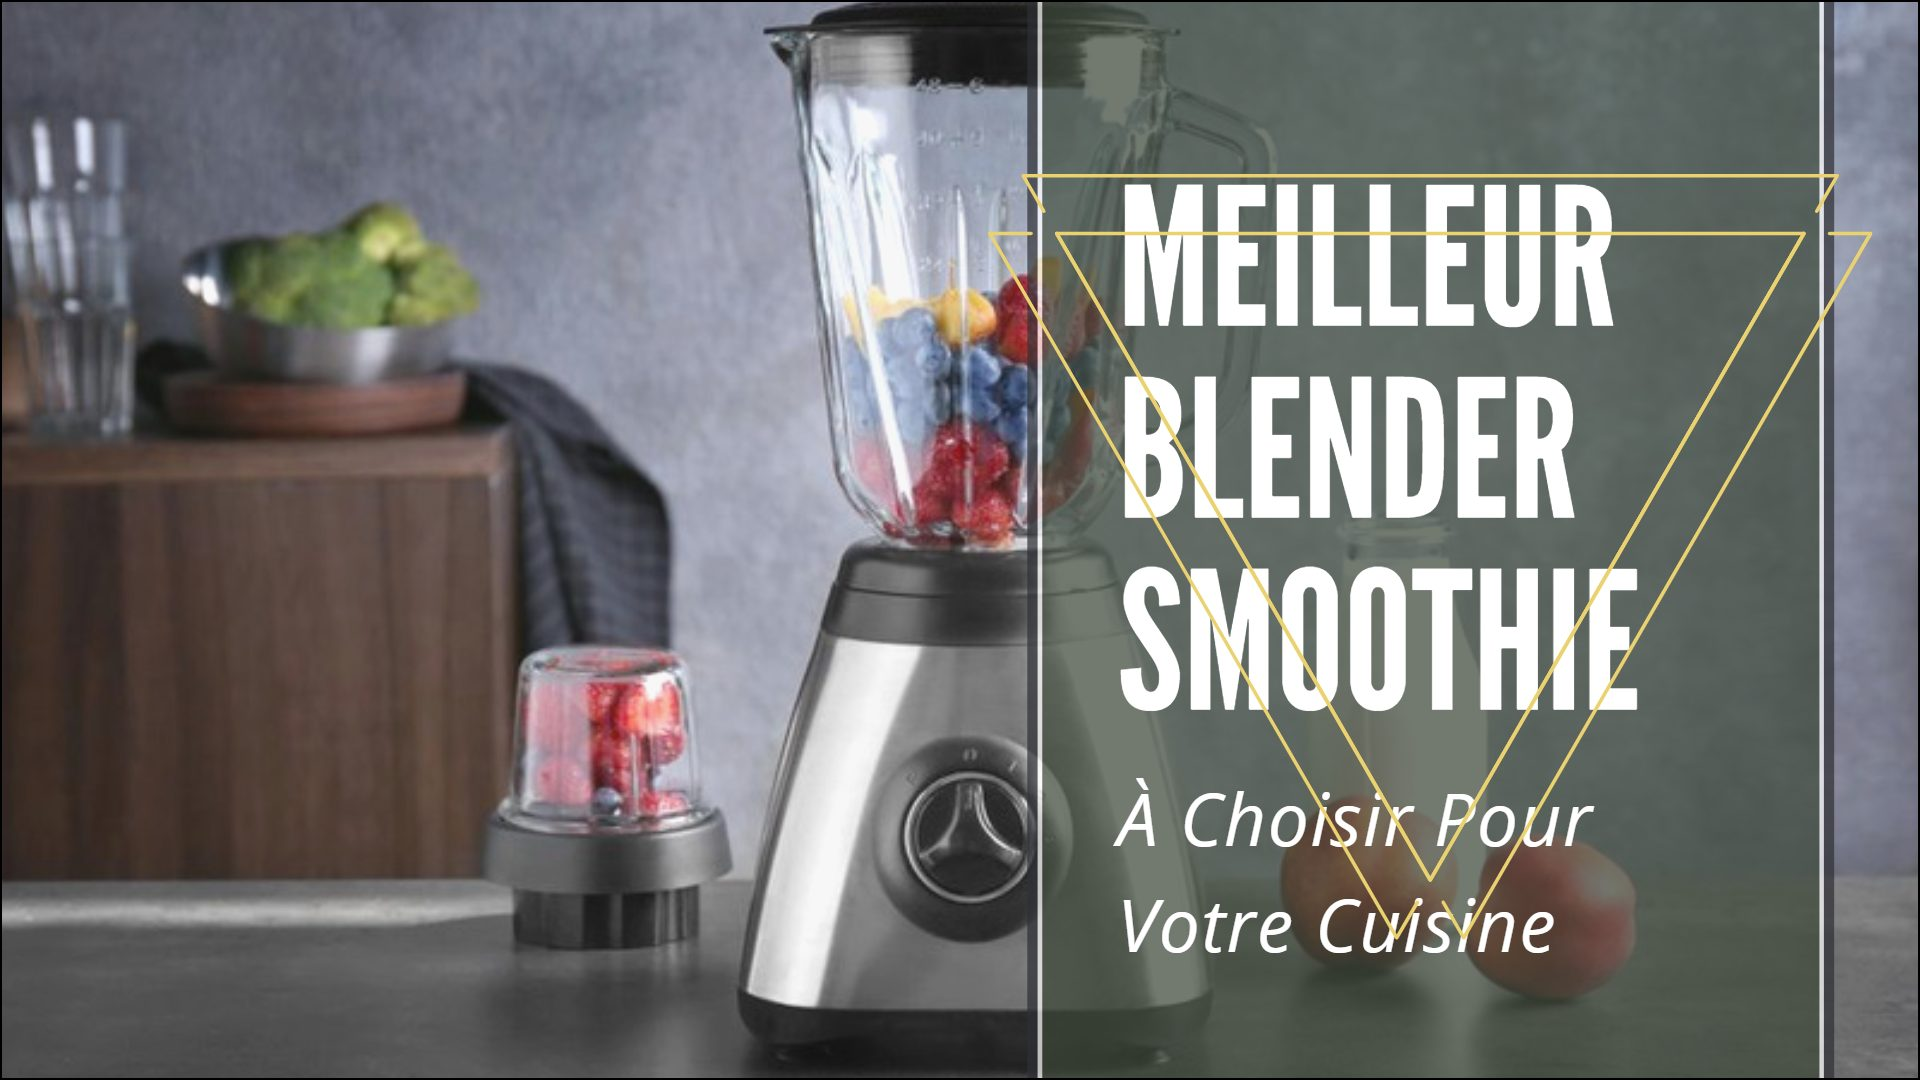 Meilleur Blender Smoothie